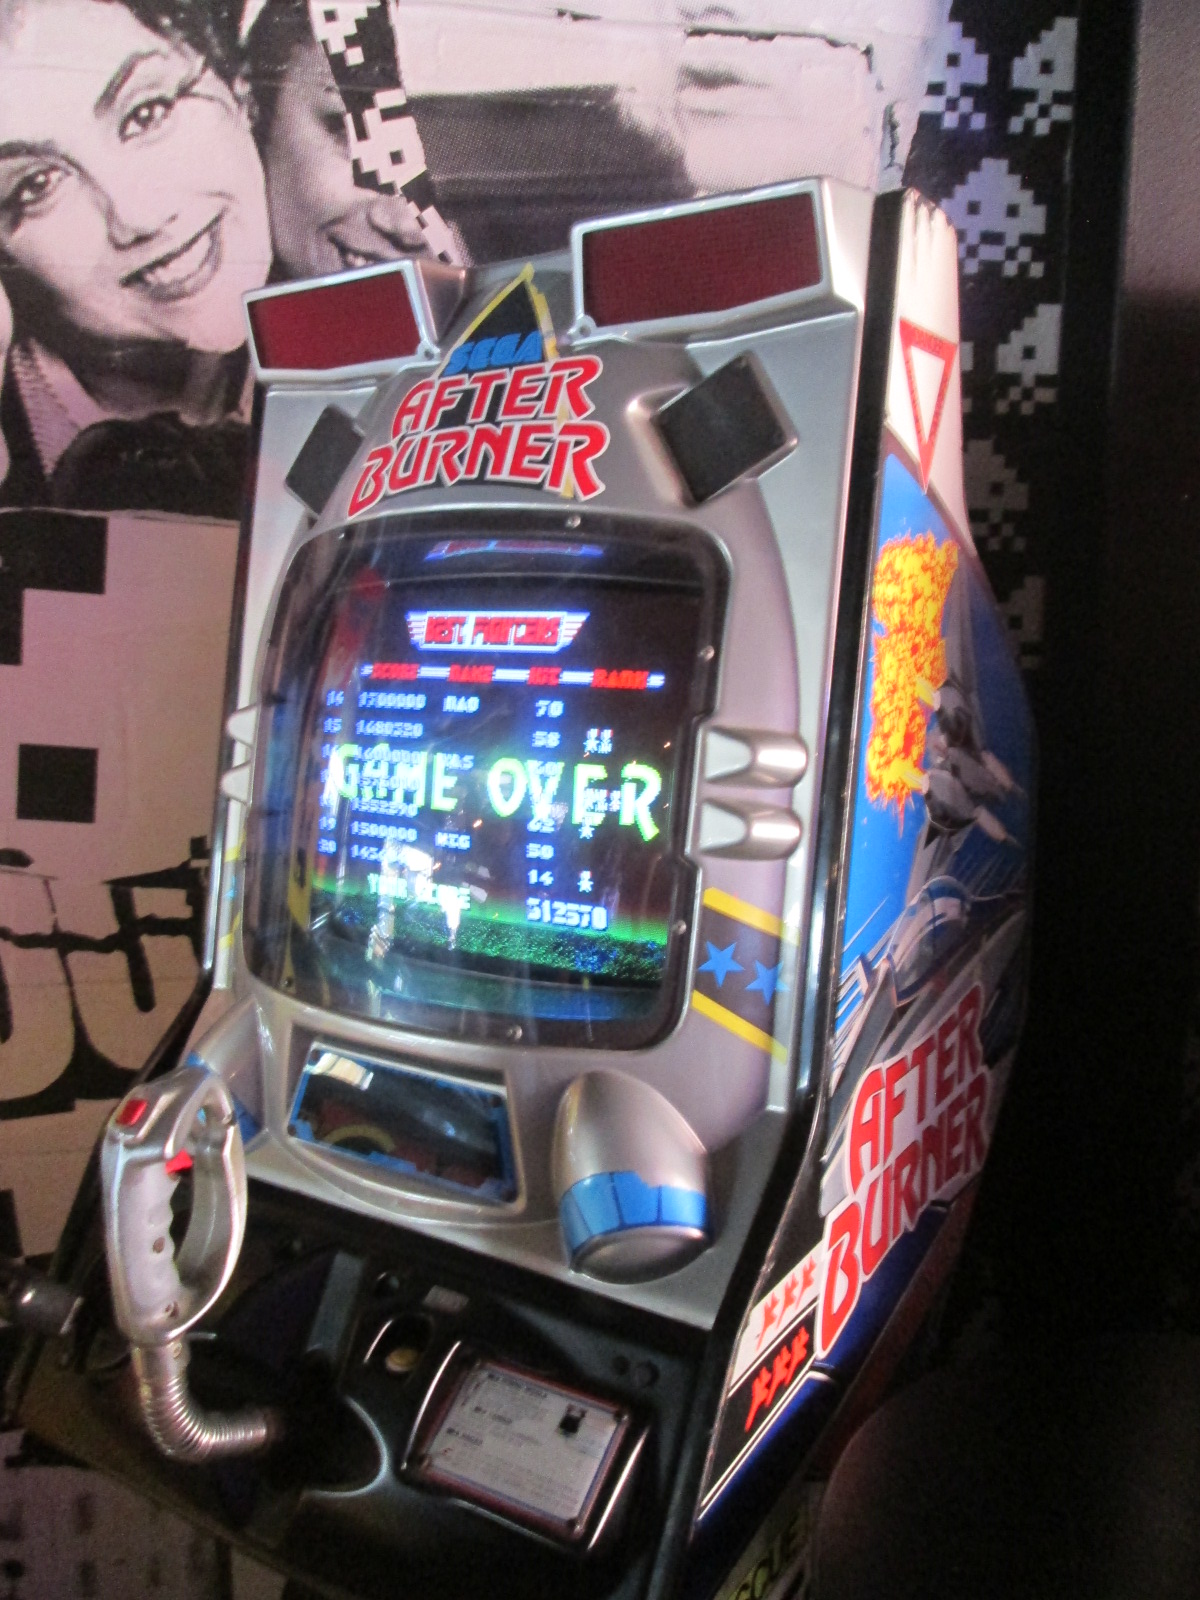 ed1475: After Burner (Arcade) 312,570 points on 2016-09-11 15:47:47